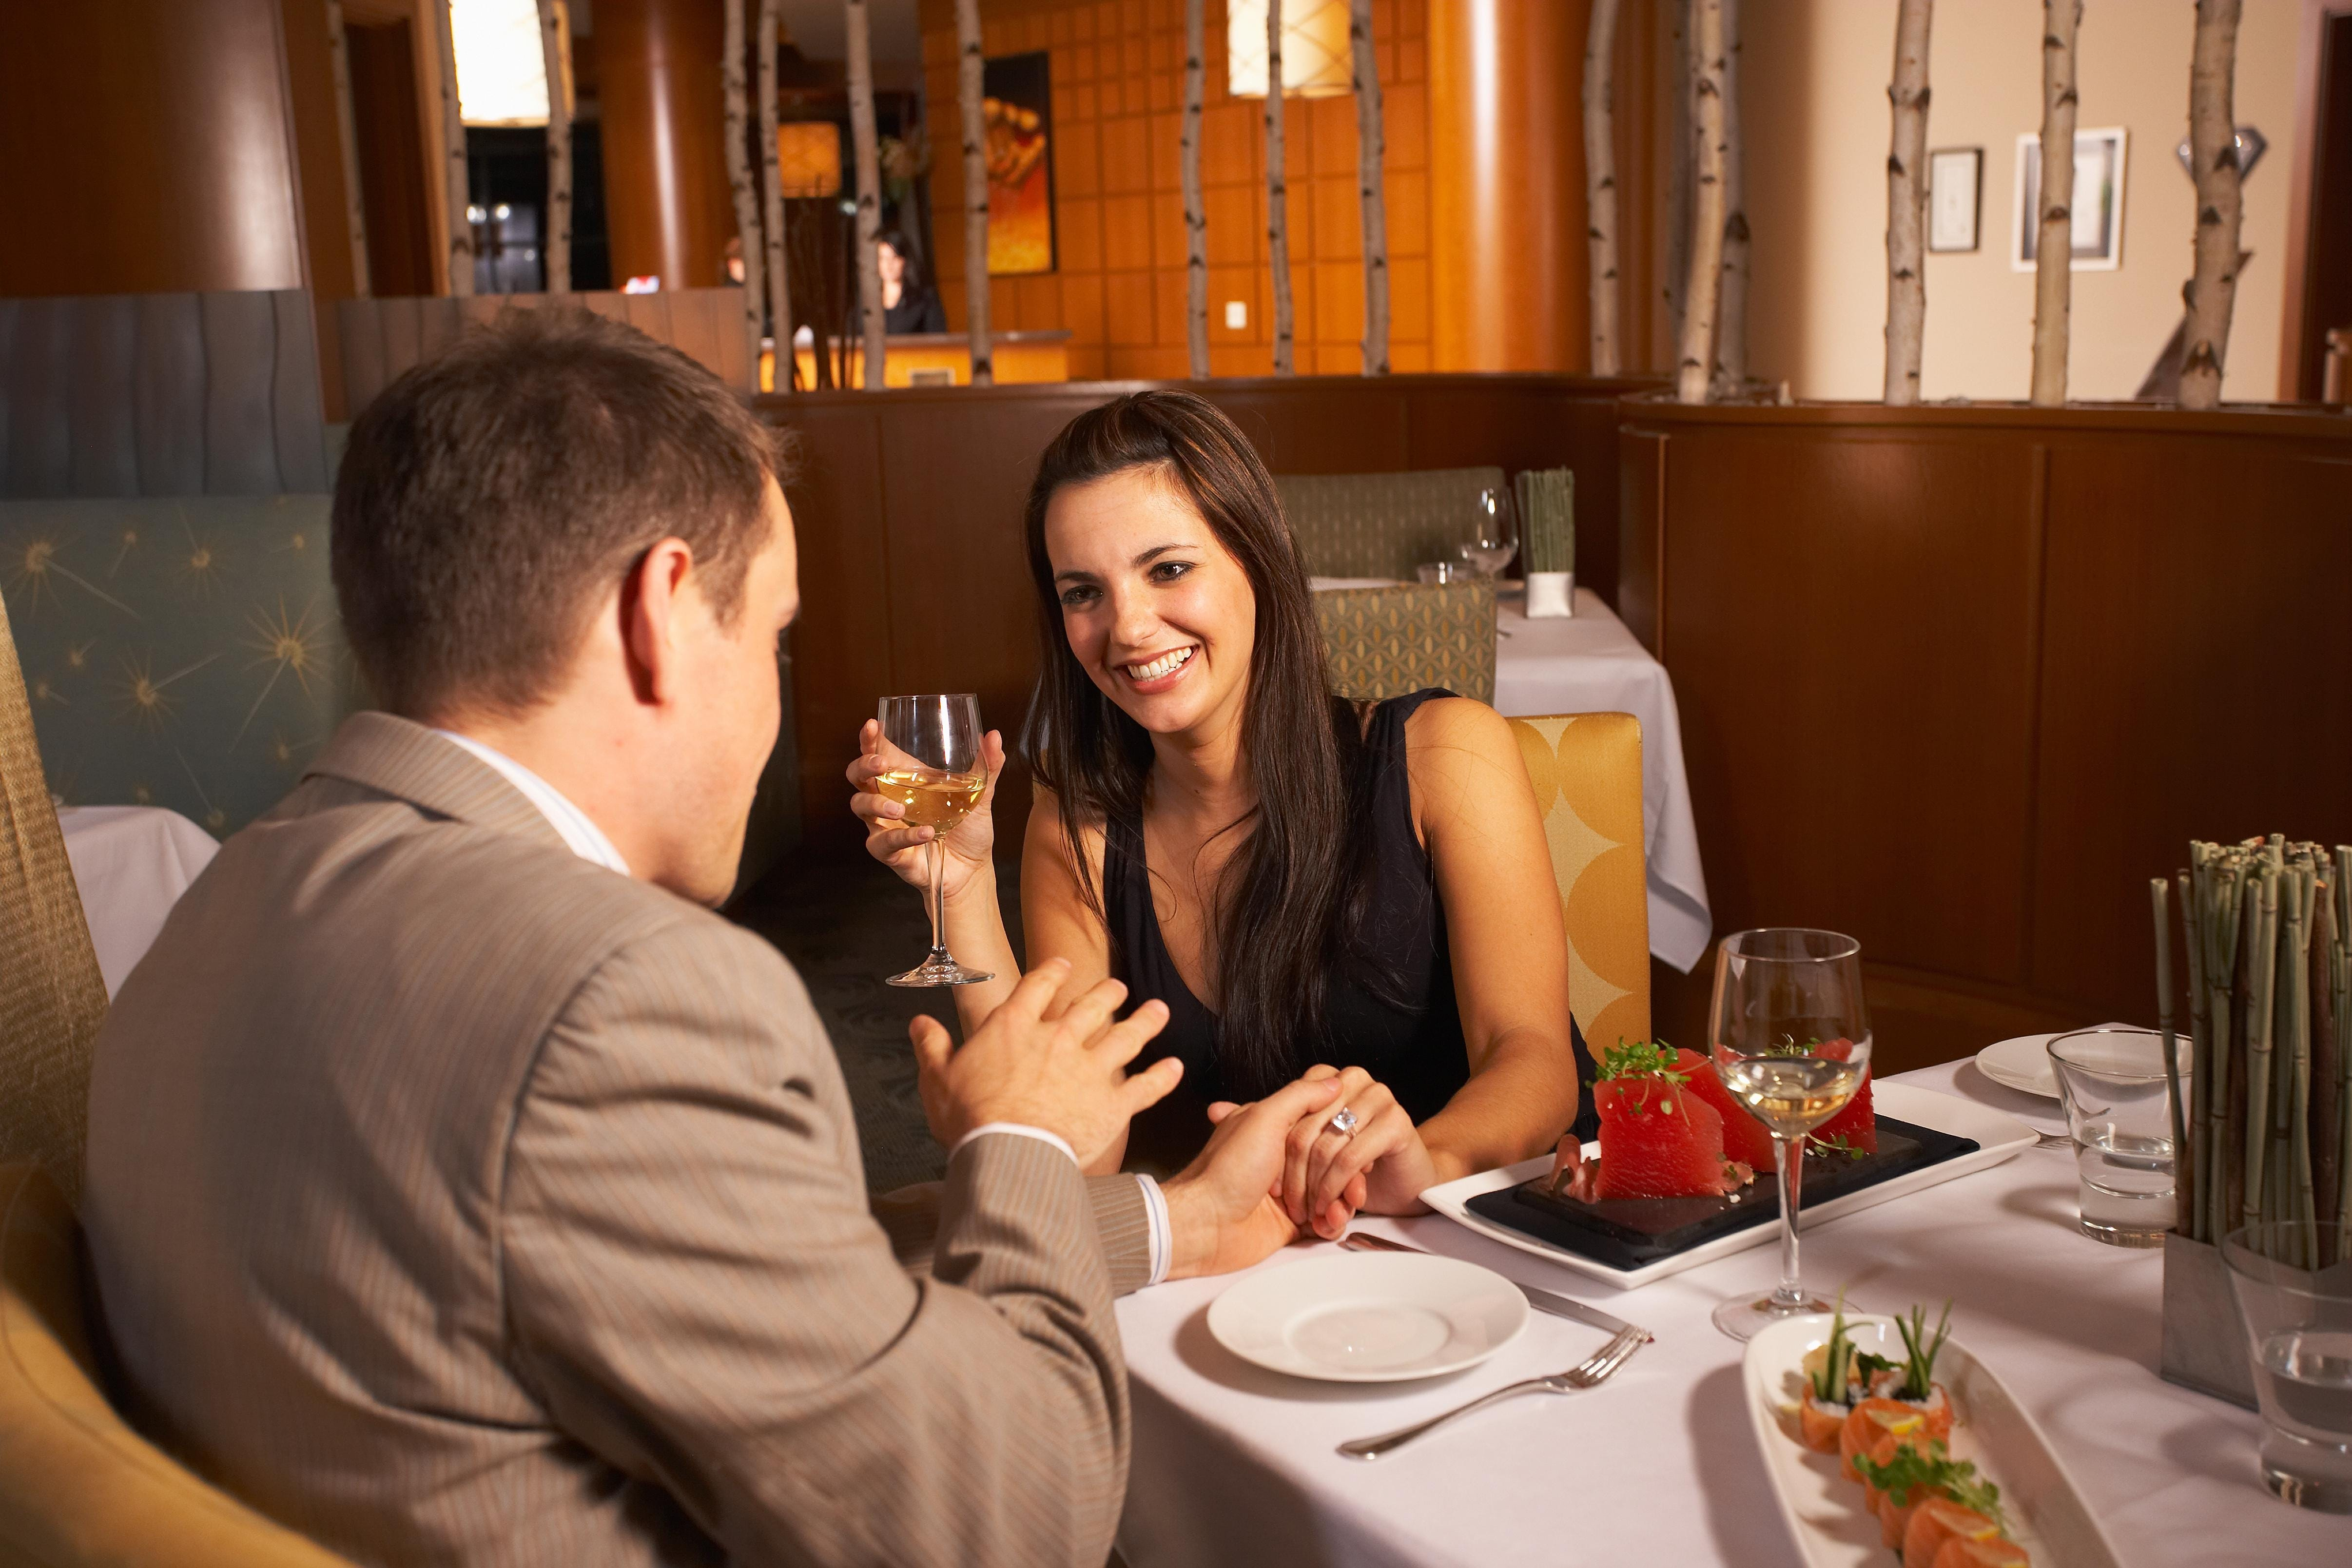 Dating services in salt lake city